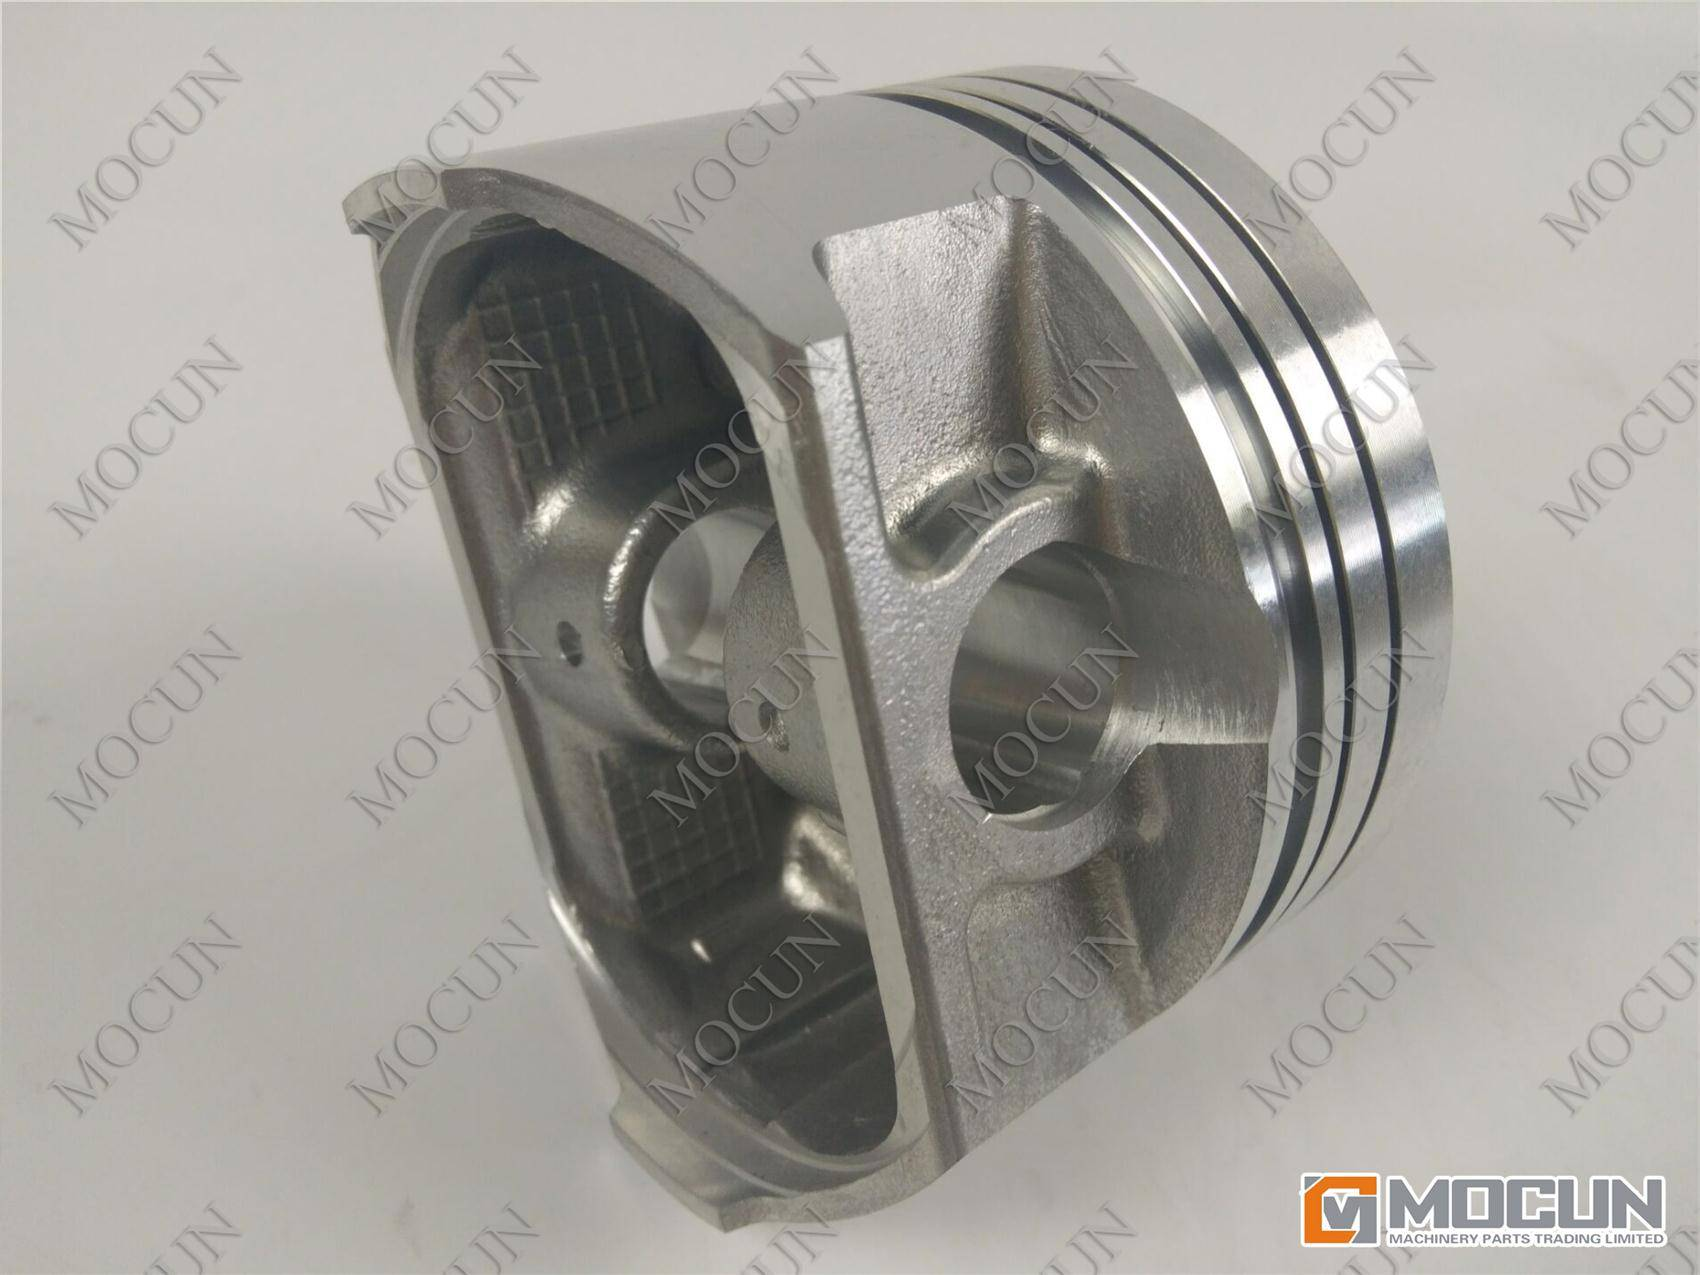 Nissan K25 engine piston